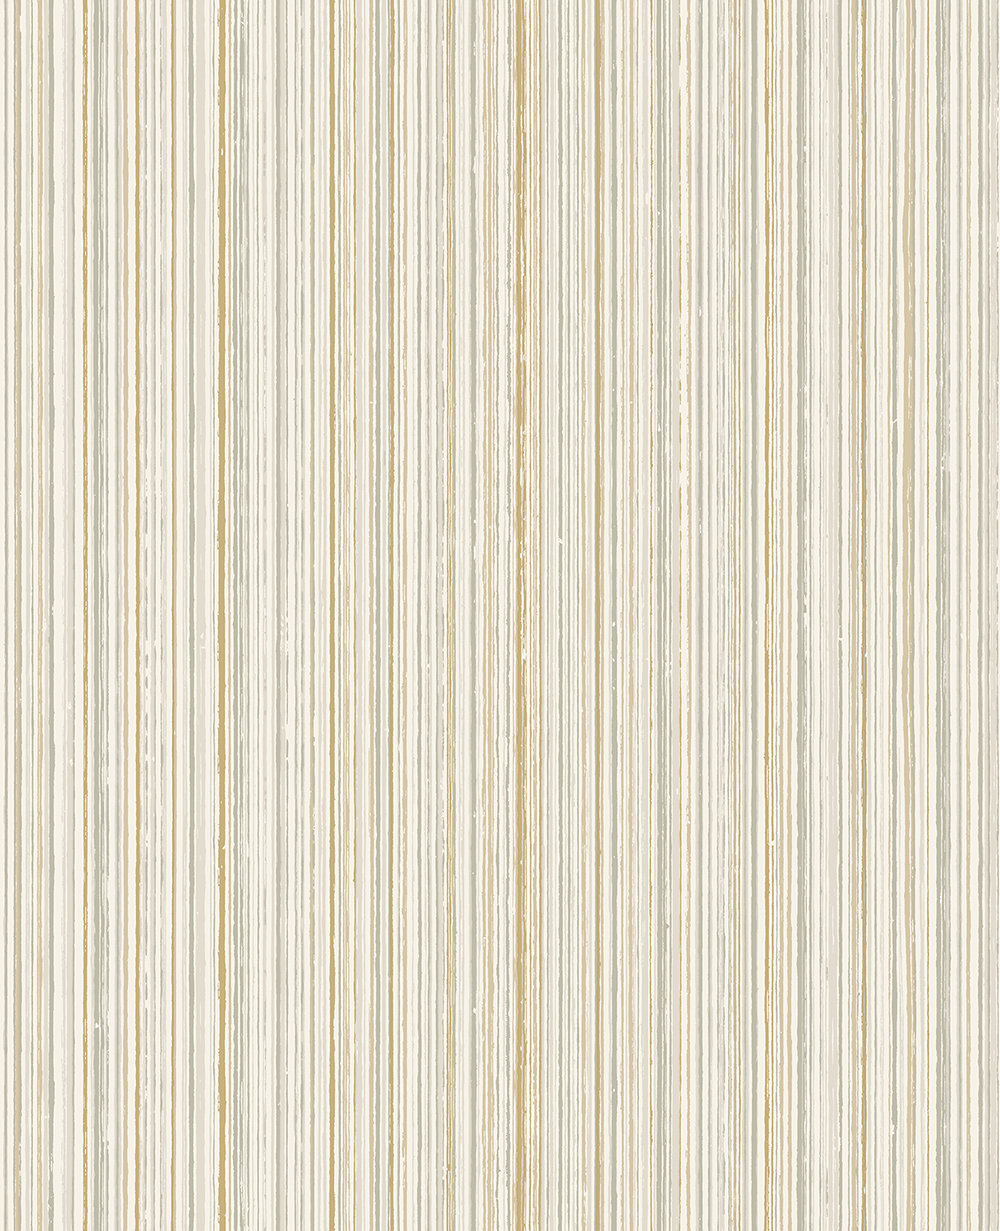 The Paper Partnership Milne Stripe Soft Cream Wallpaper - Product code: WP0130903